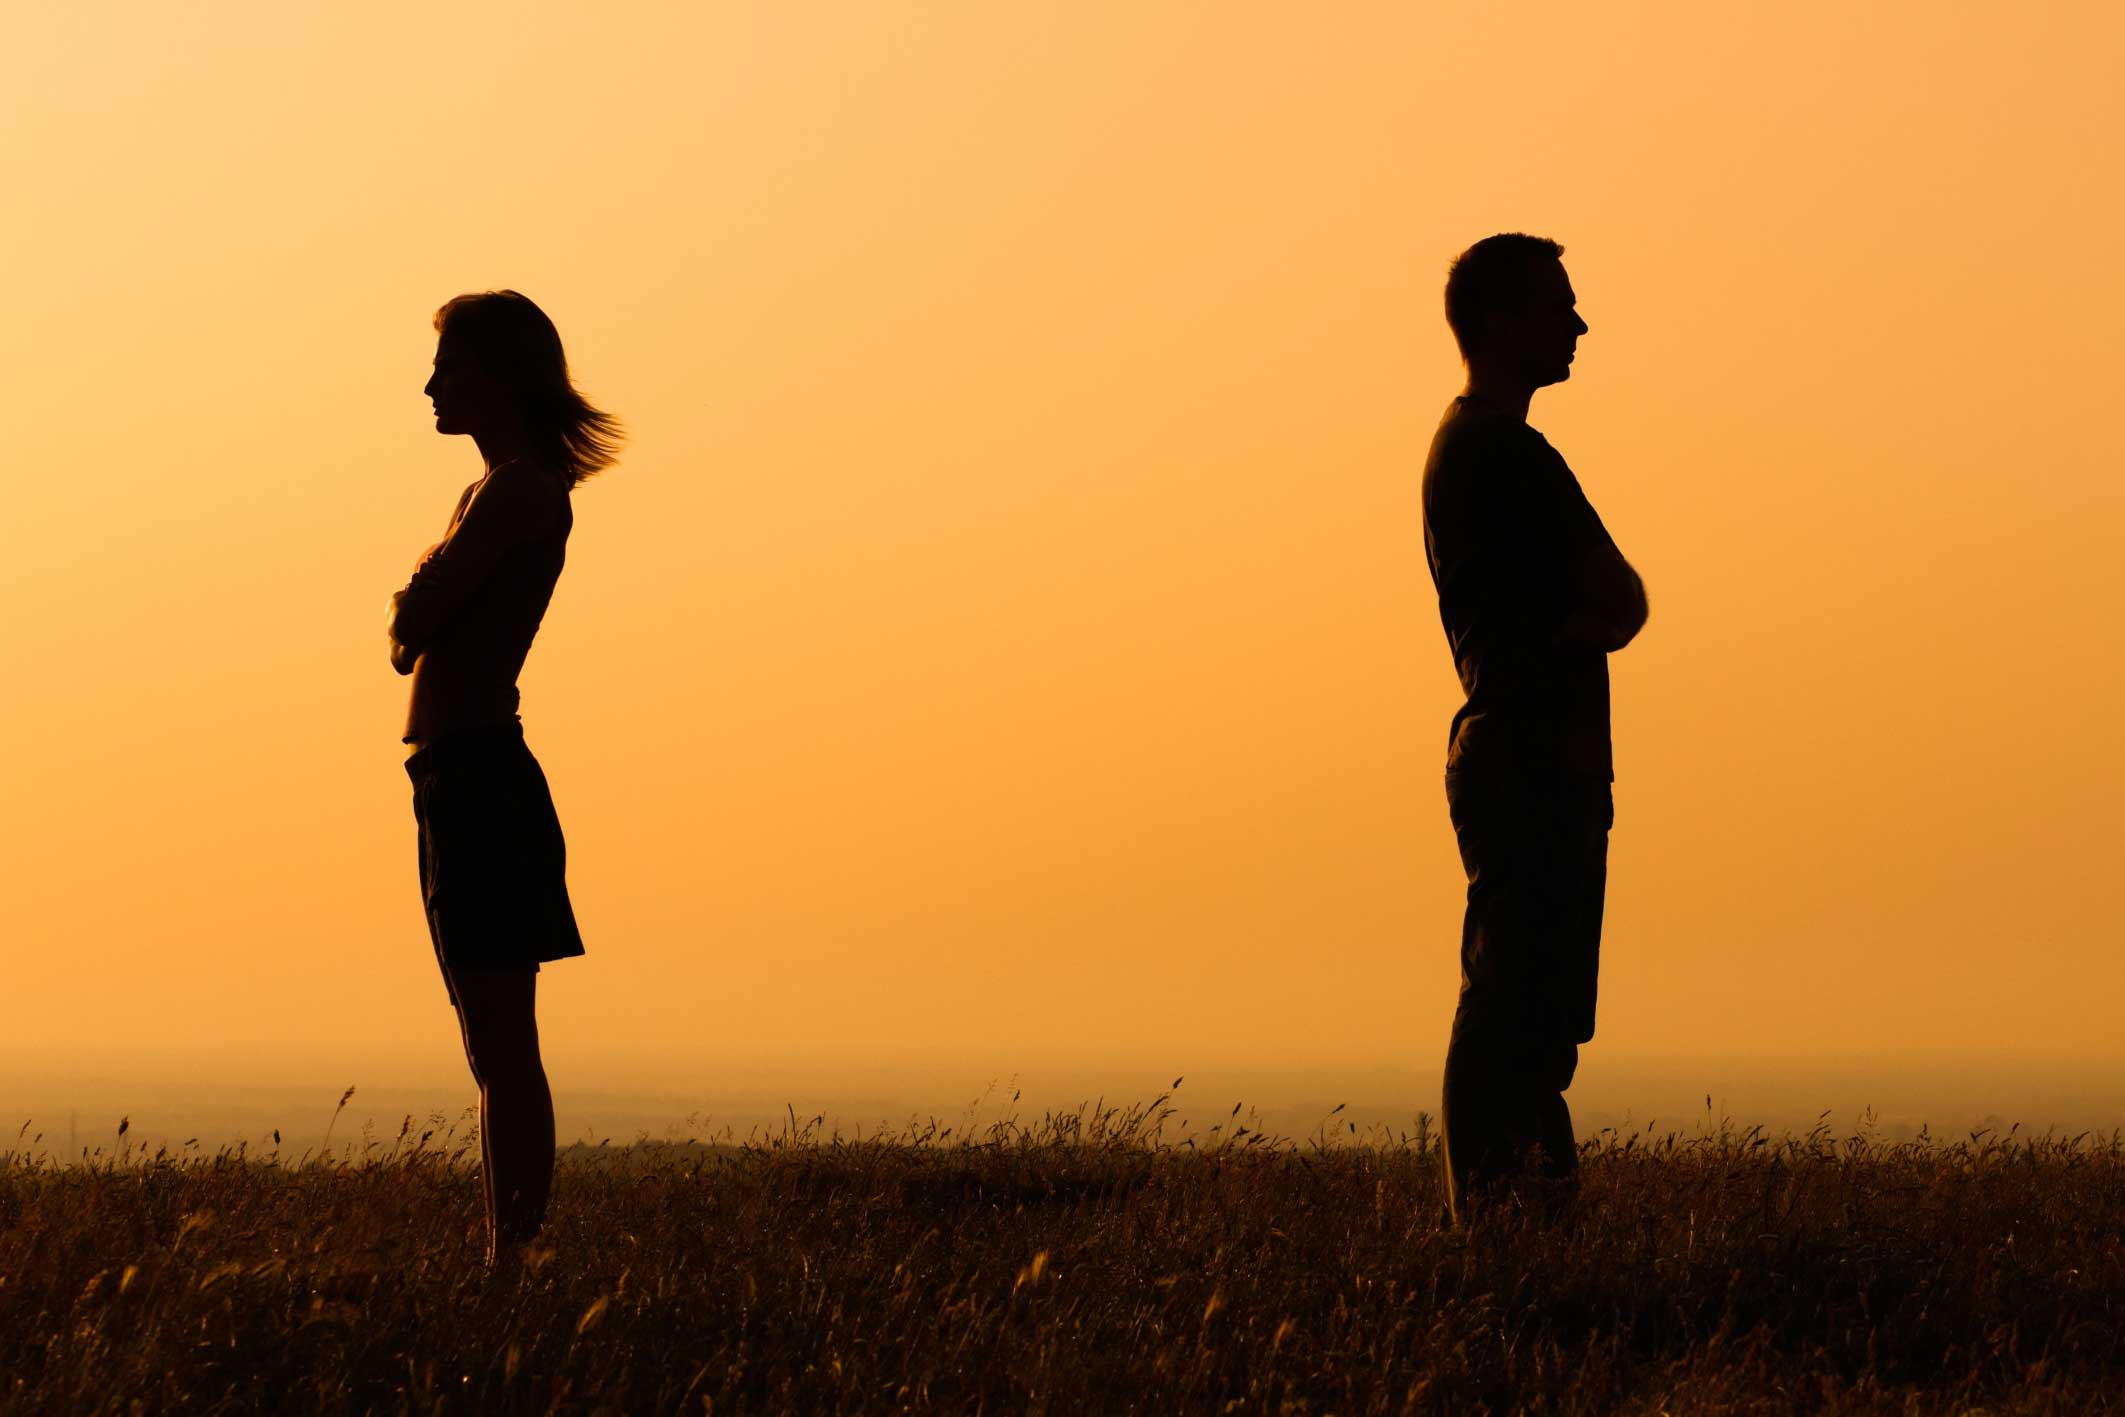 ADHD and Relationships: Why ADD Marriages End in Divorce